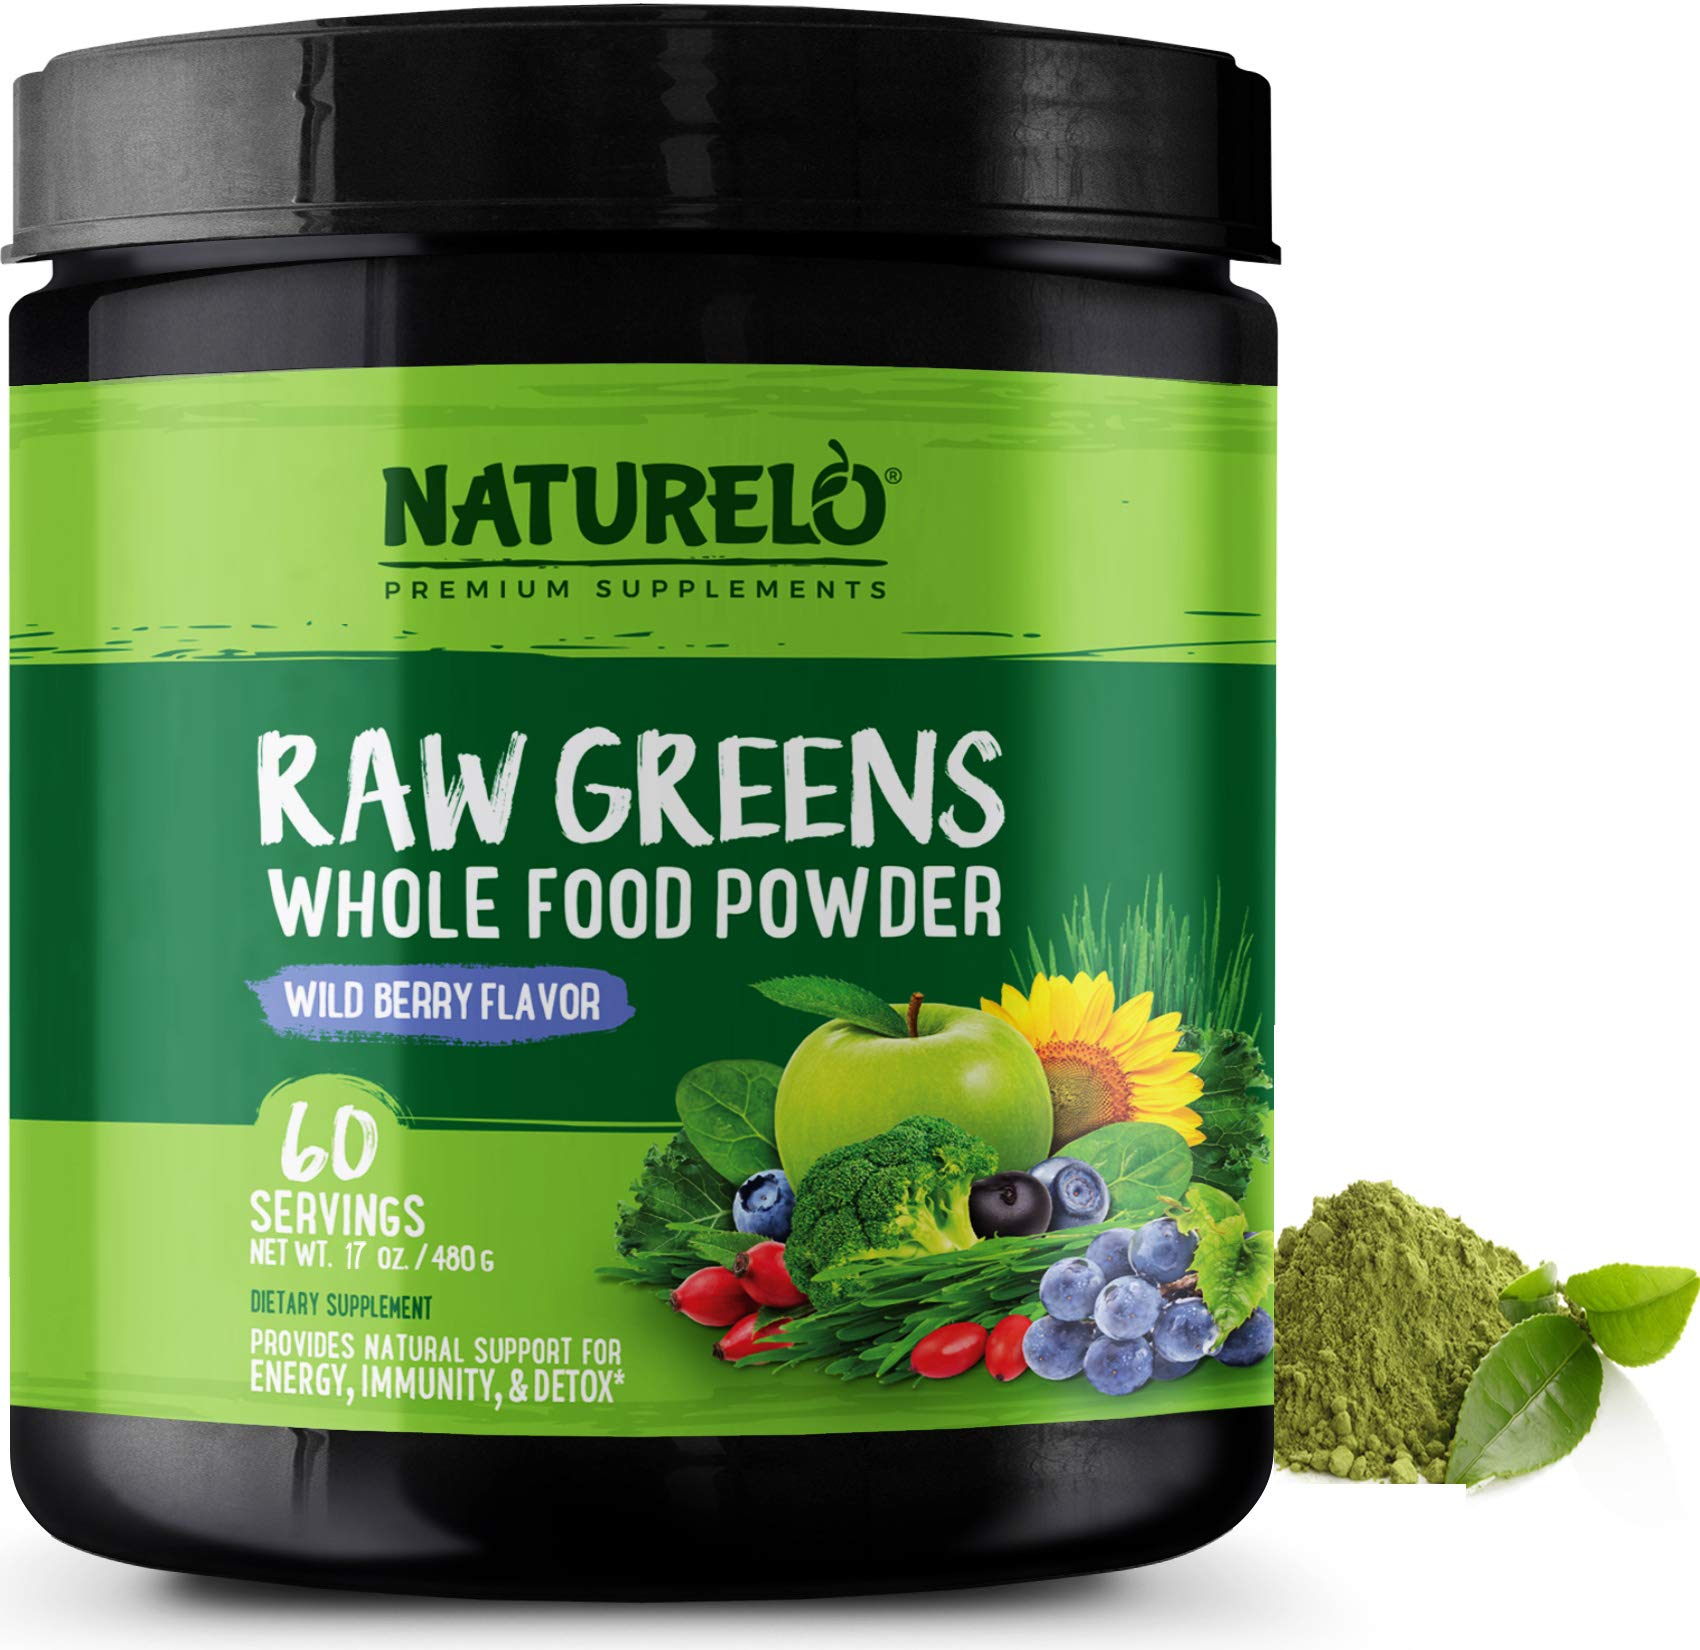 NATURELO Raw Greens Superfood Powder - Wild Berry Flavor - Boost Energy, Detox, Enhance Health - Organic Spirulina - Wheat Grass - Whole Food Nutrition from Fruits & Vegetables - 60 Servings